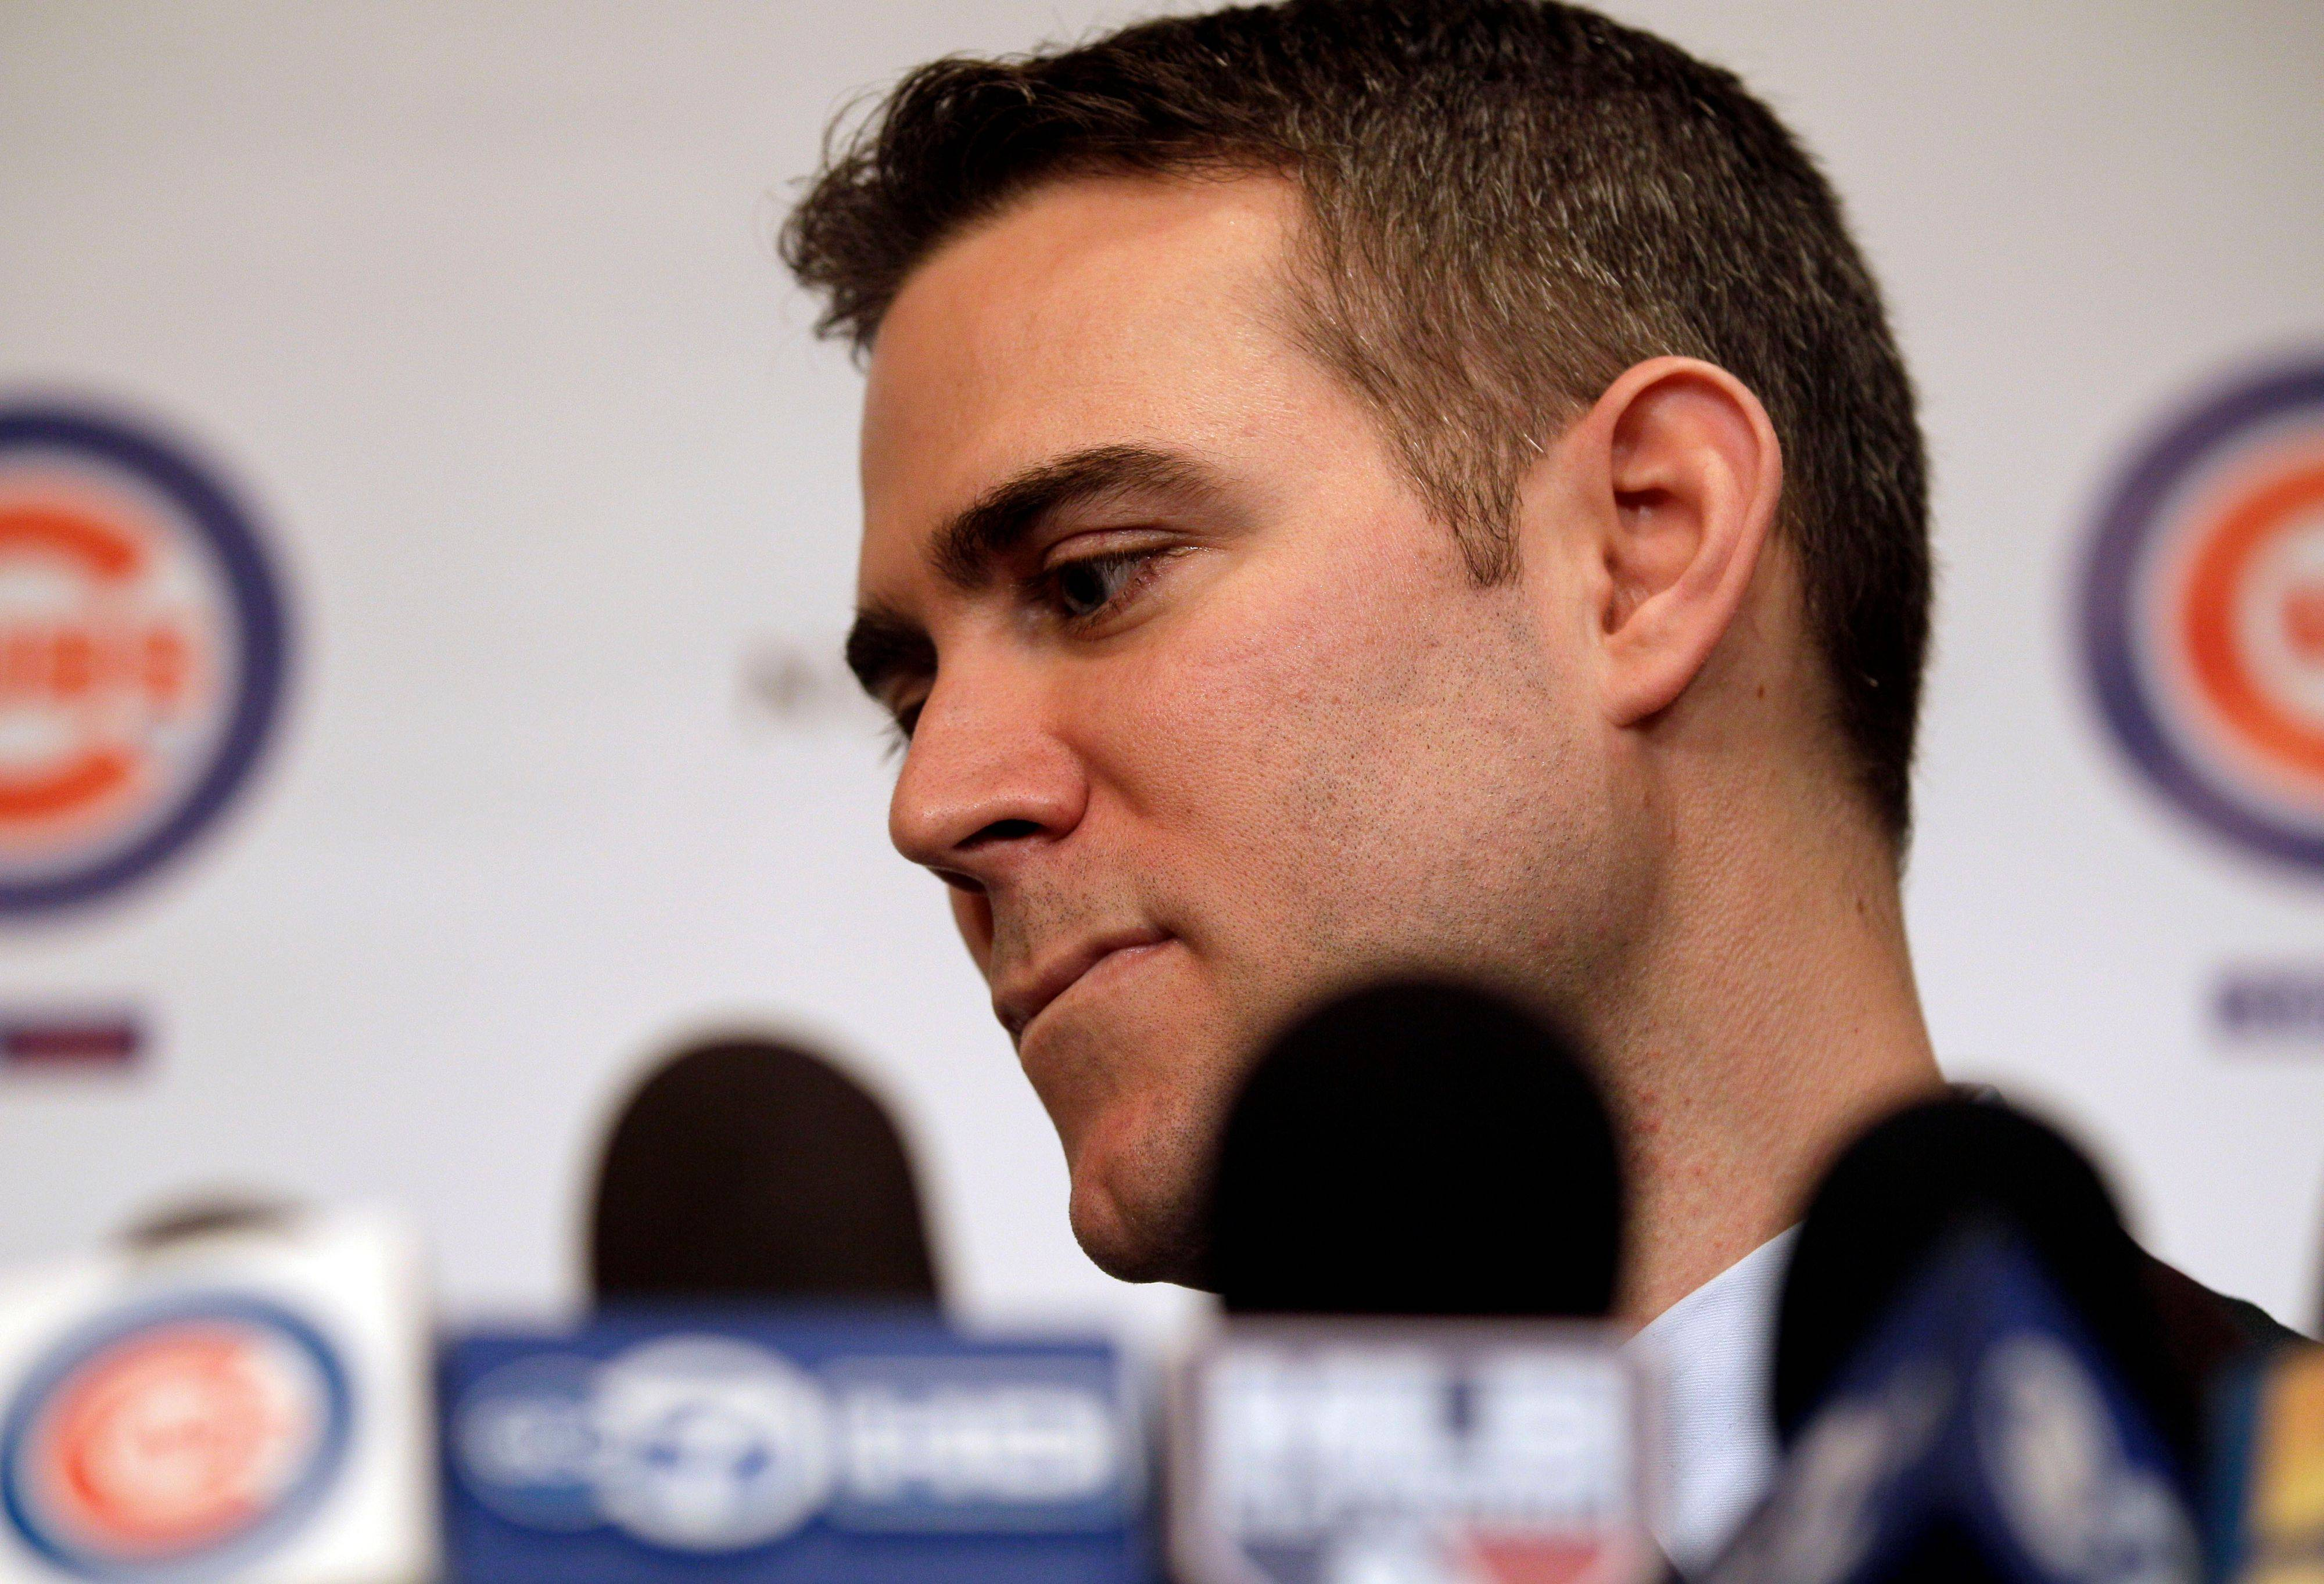 Chicago Cubs president Theo Epstein listens to questions from reporters during a news conference during the 27th annual Chicago Cubs baseball convention in Chicago on Friday, Jan. 13, 2012.